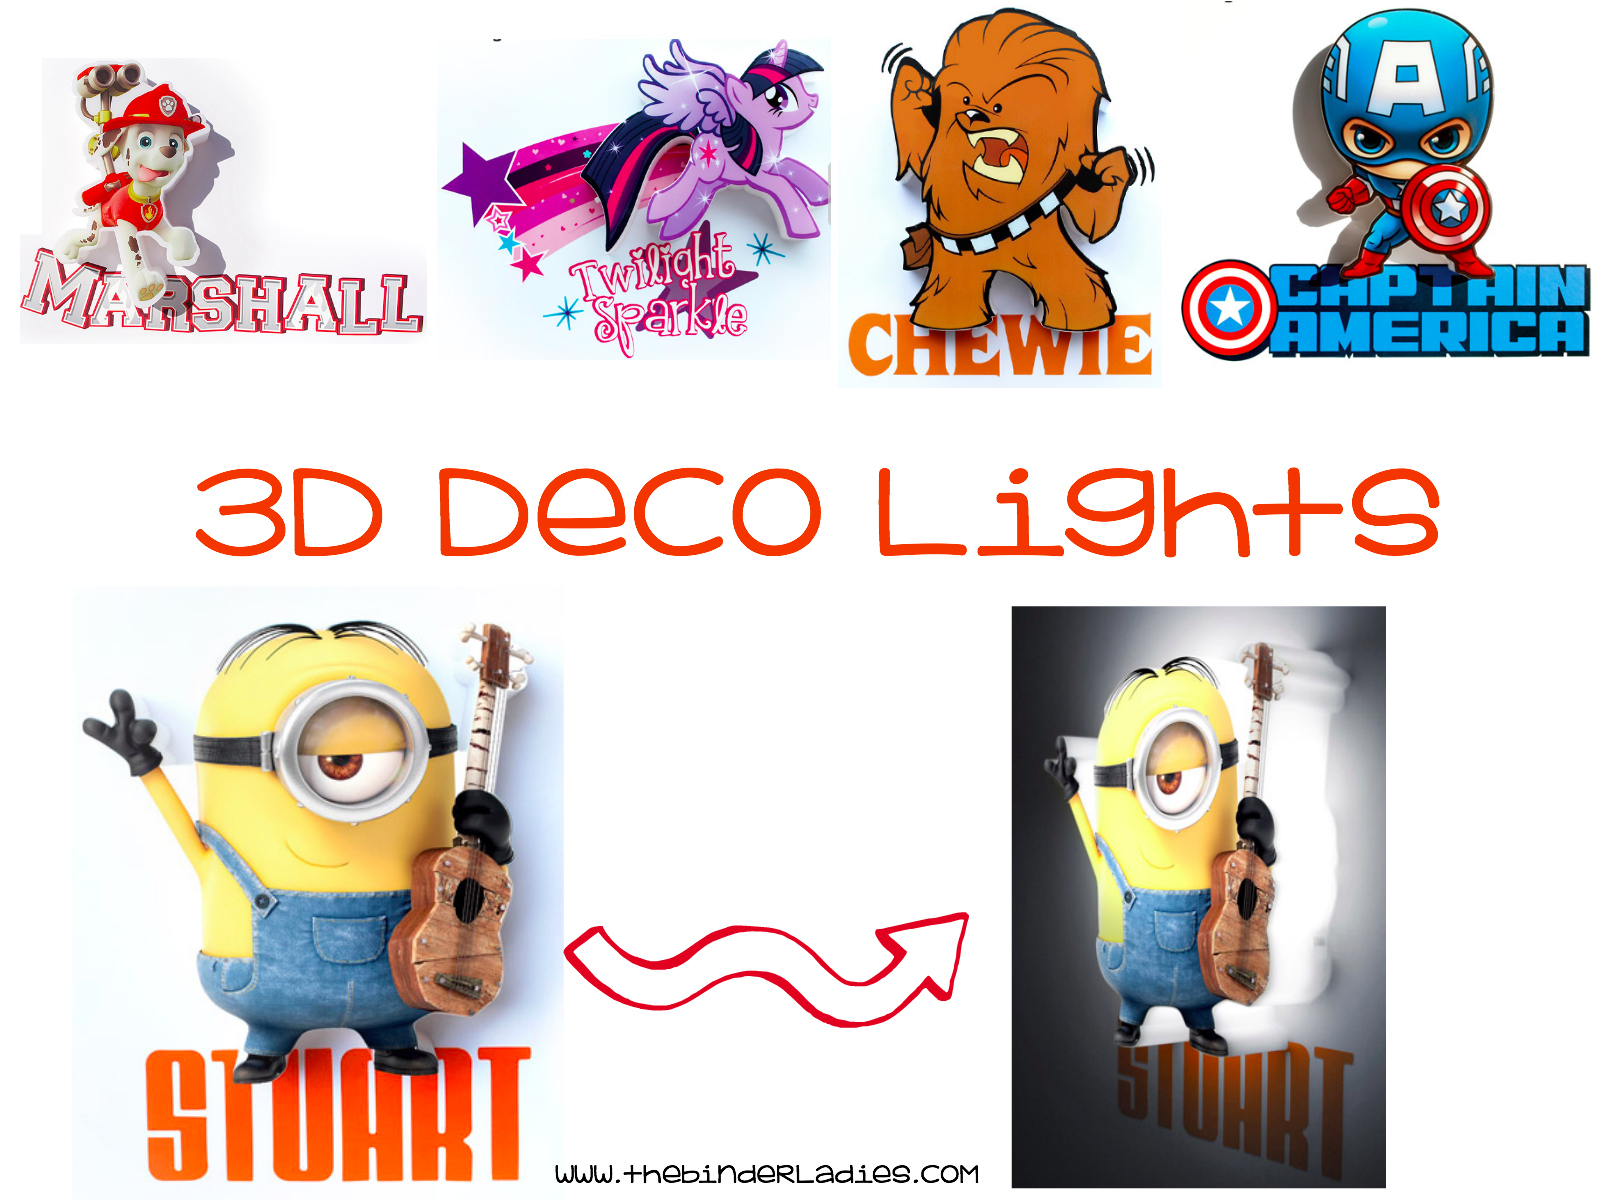 3D Mini Deco Lights - Favorite Characters Light Up The Room!